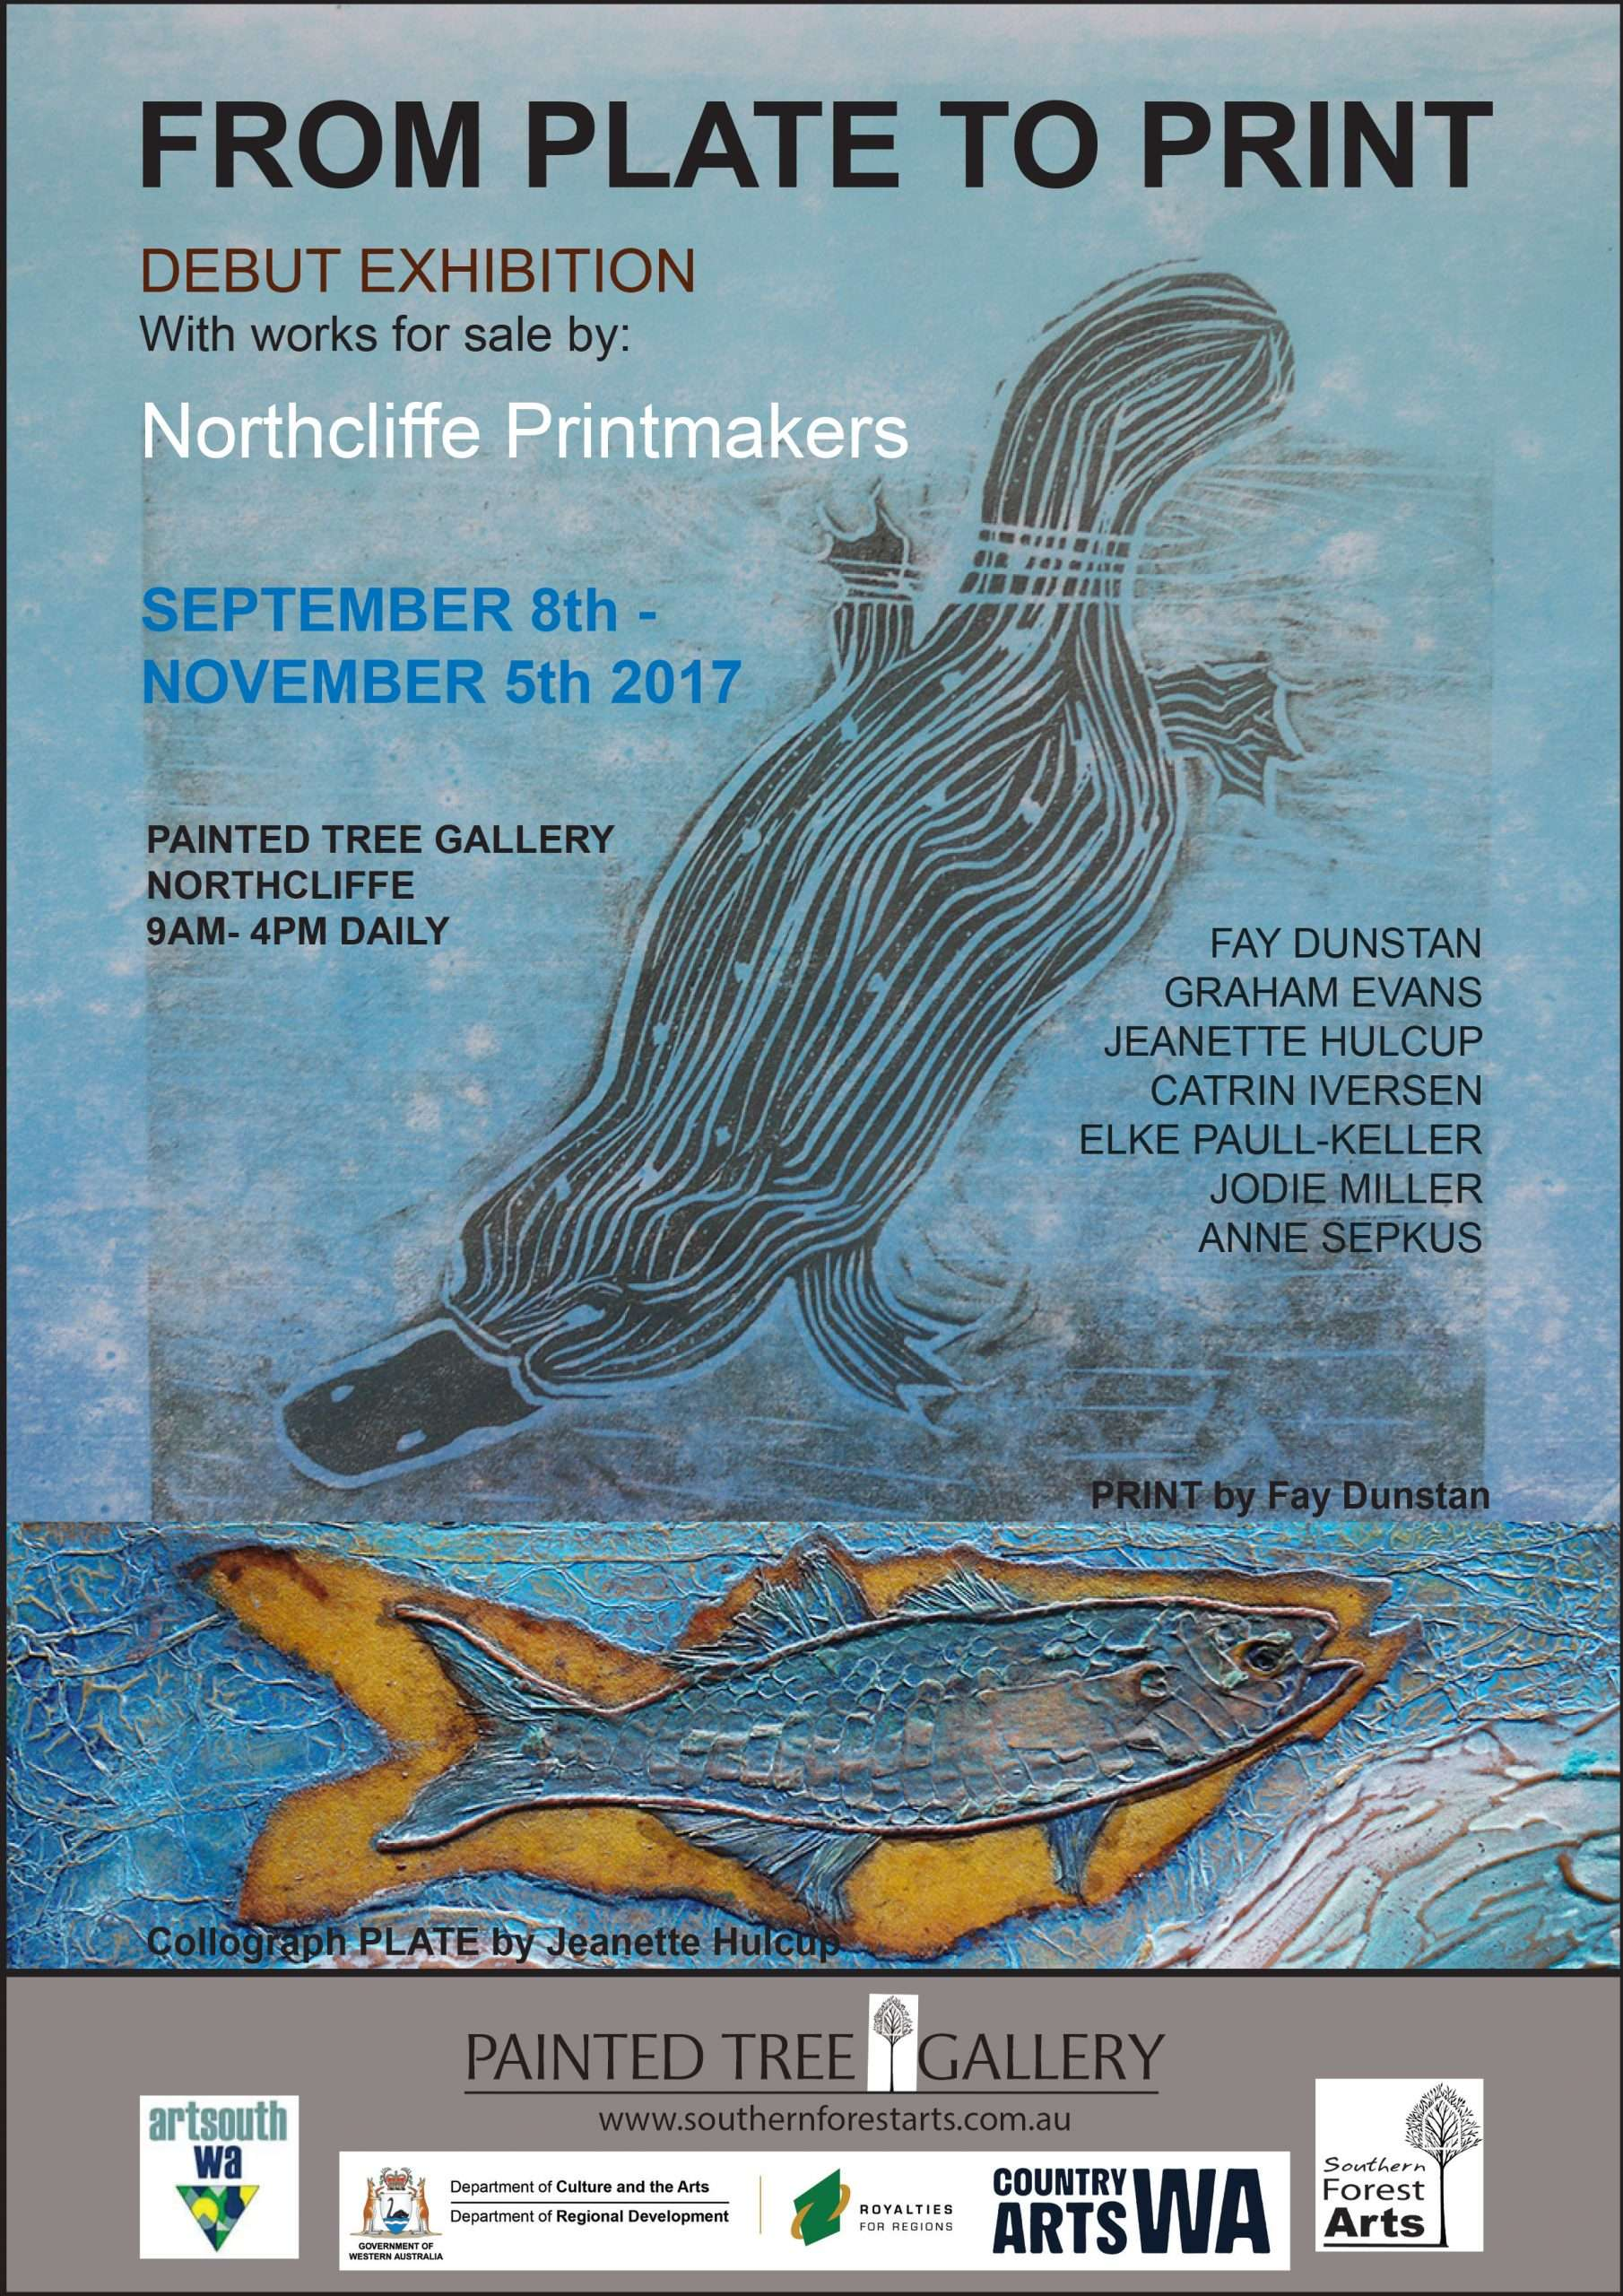 From Print to Plate exhibition poster for the Painted Tree Gallery Northcliffe, hosted by Southern Forest Arts